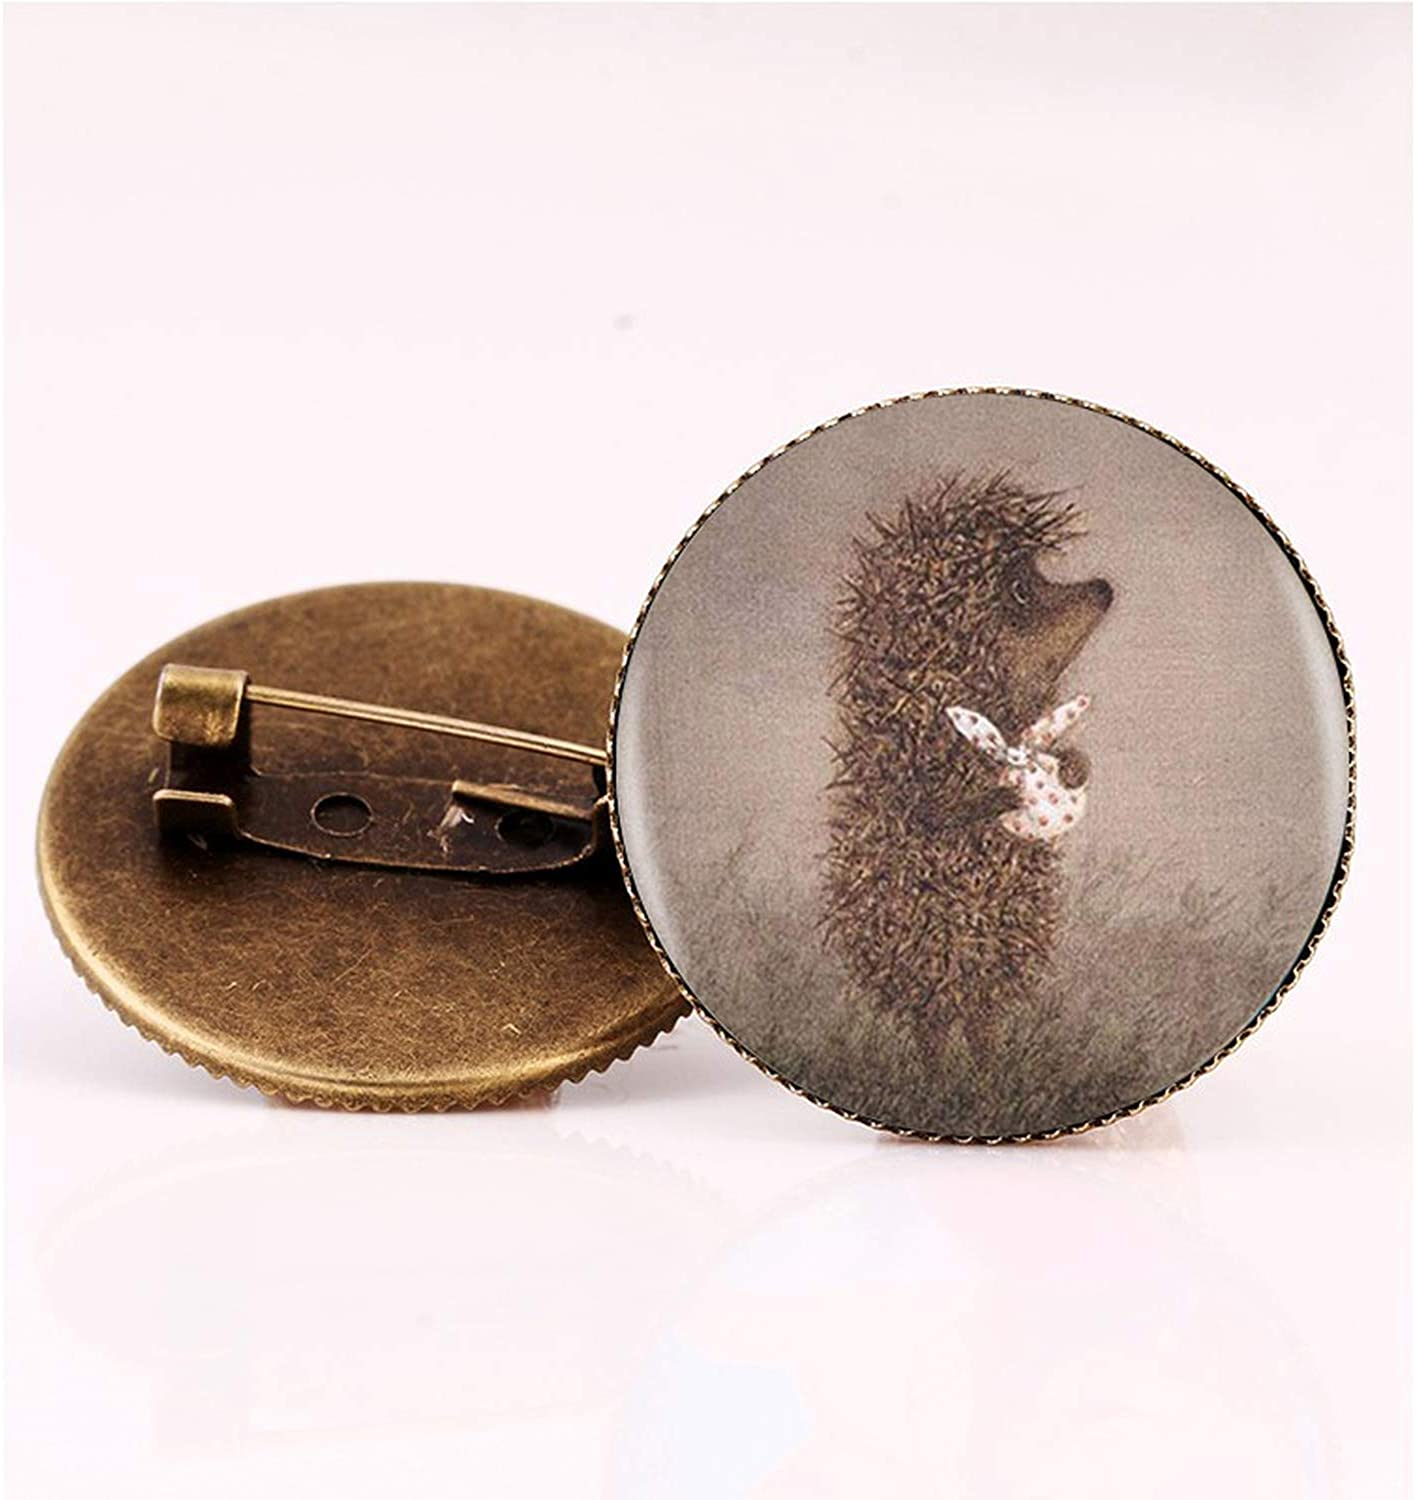 Zutty Vintage Hedgehog Brooch Special Animal Pins Vintage Jewelry Brooches Bronze Antique Plated Collar Pin for Women Gift